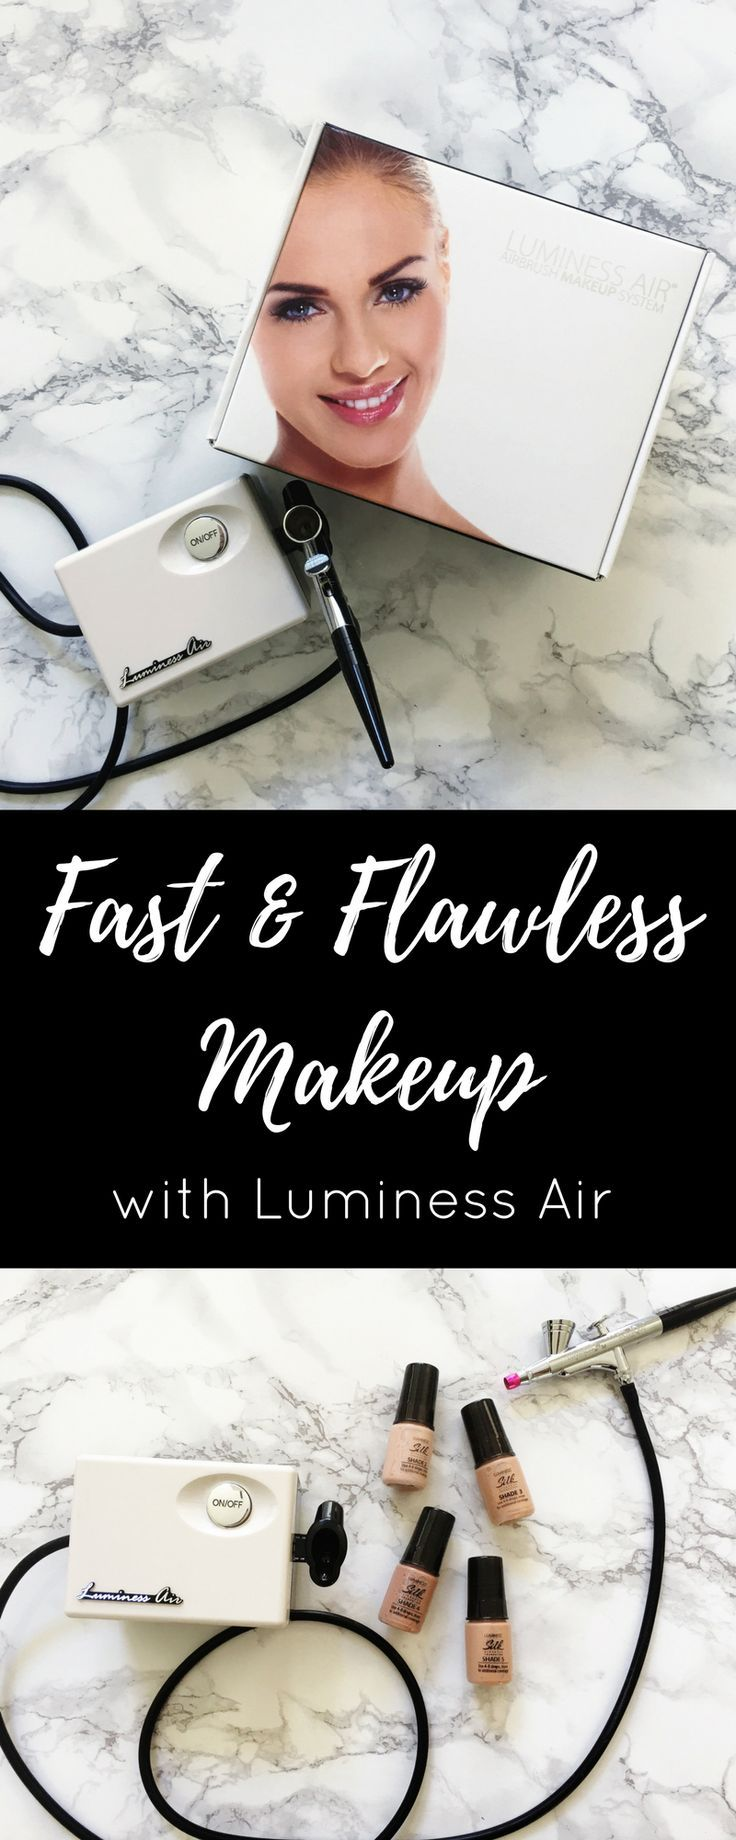 Is airbrush makeup for you? Here's my honest review of the Luminess Air airbrush makeup system.